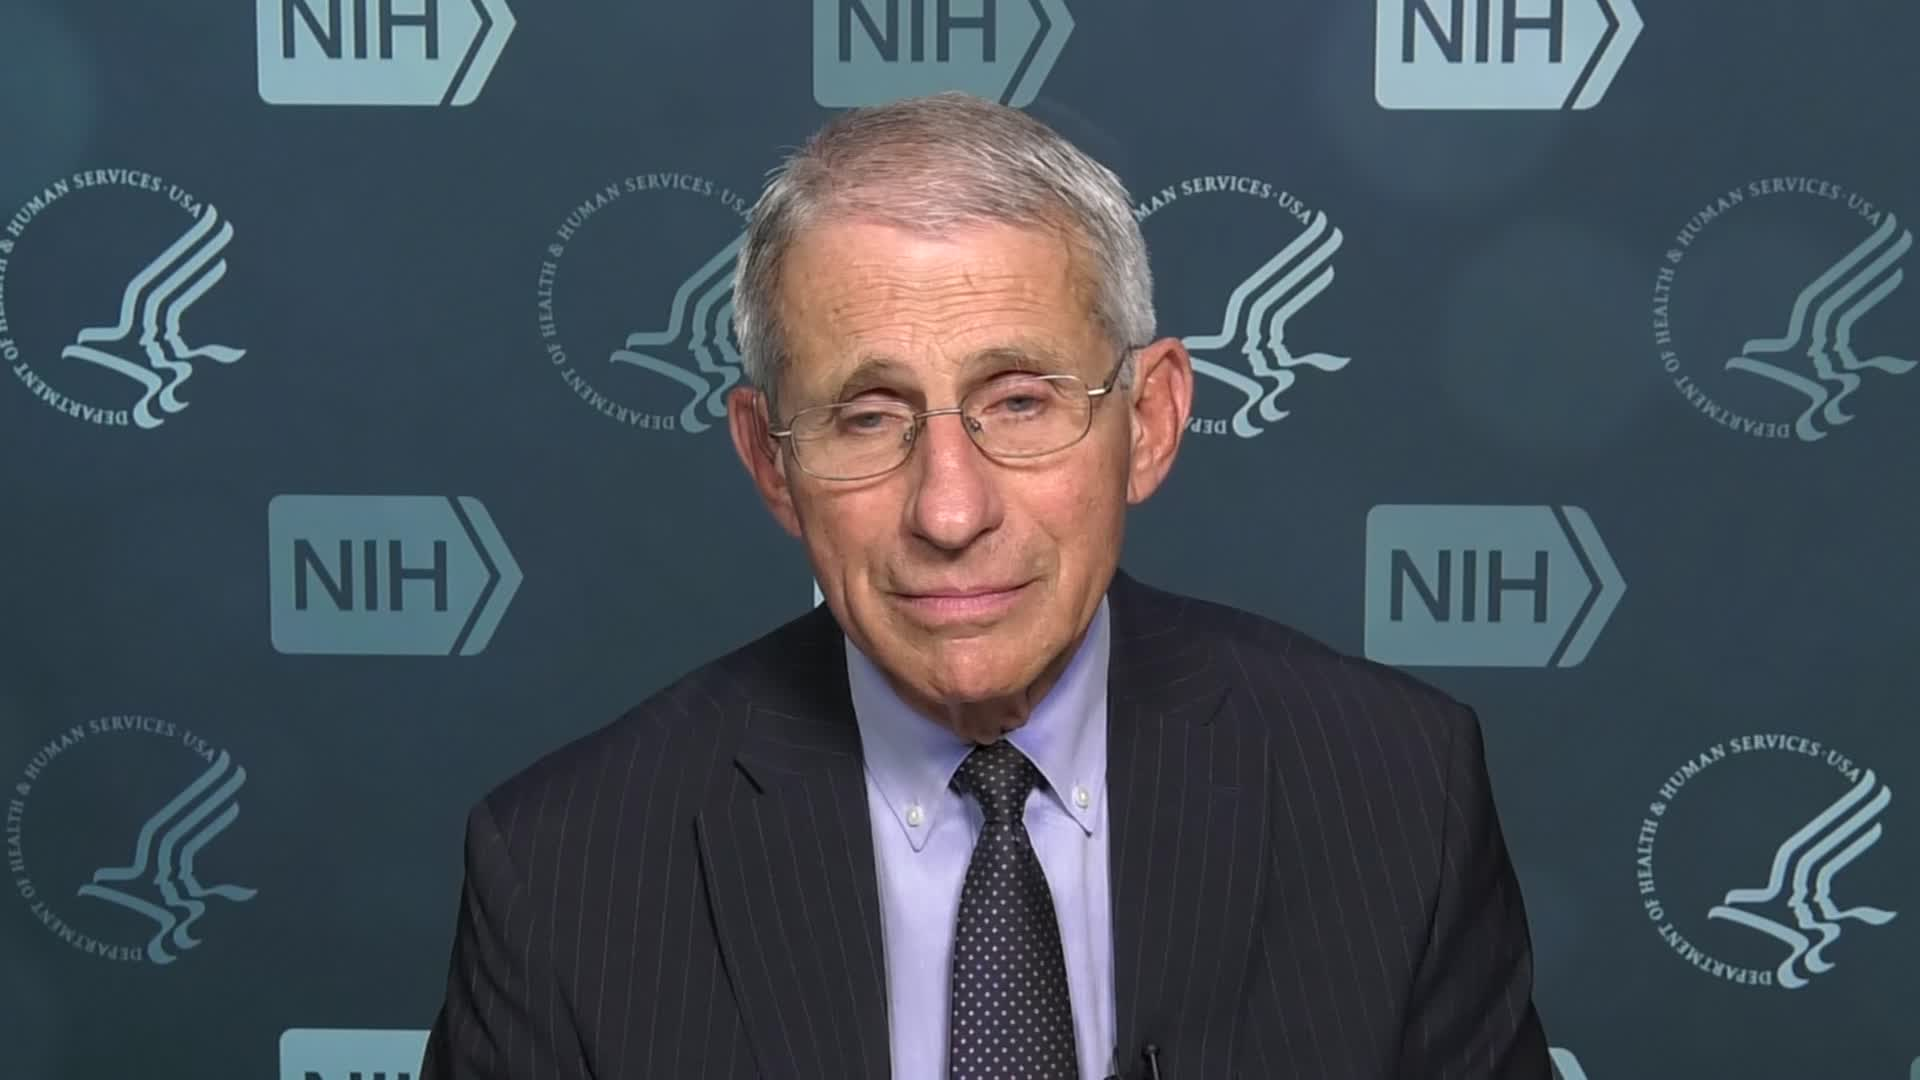 White House task force actively discussing whether public should be wearing masks, Fauci says